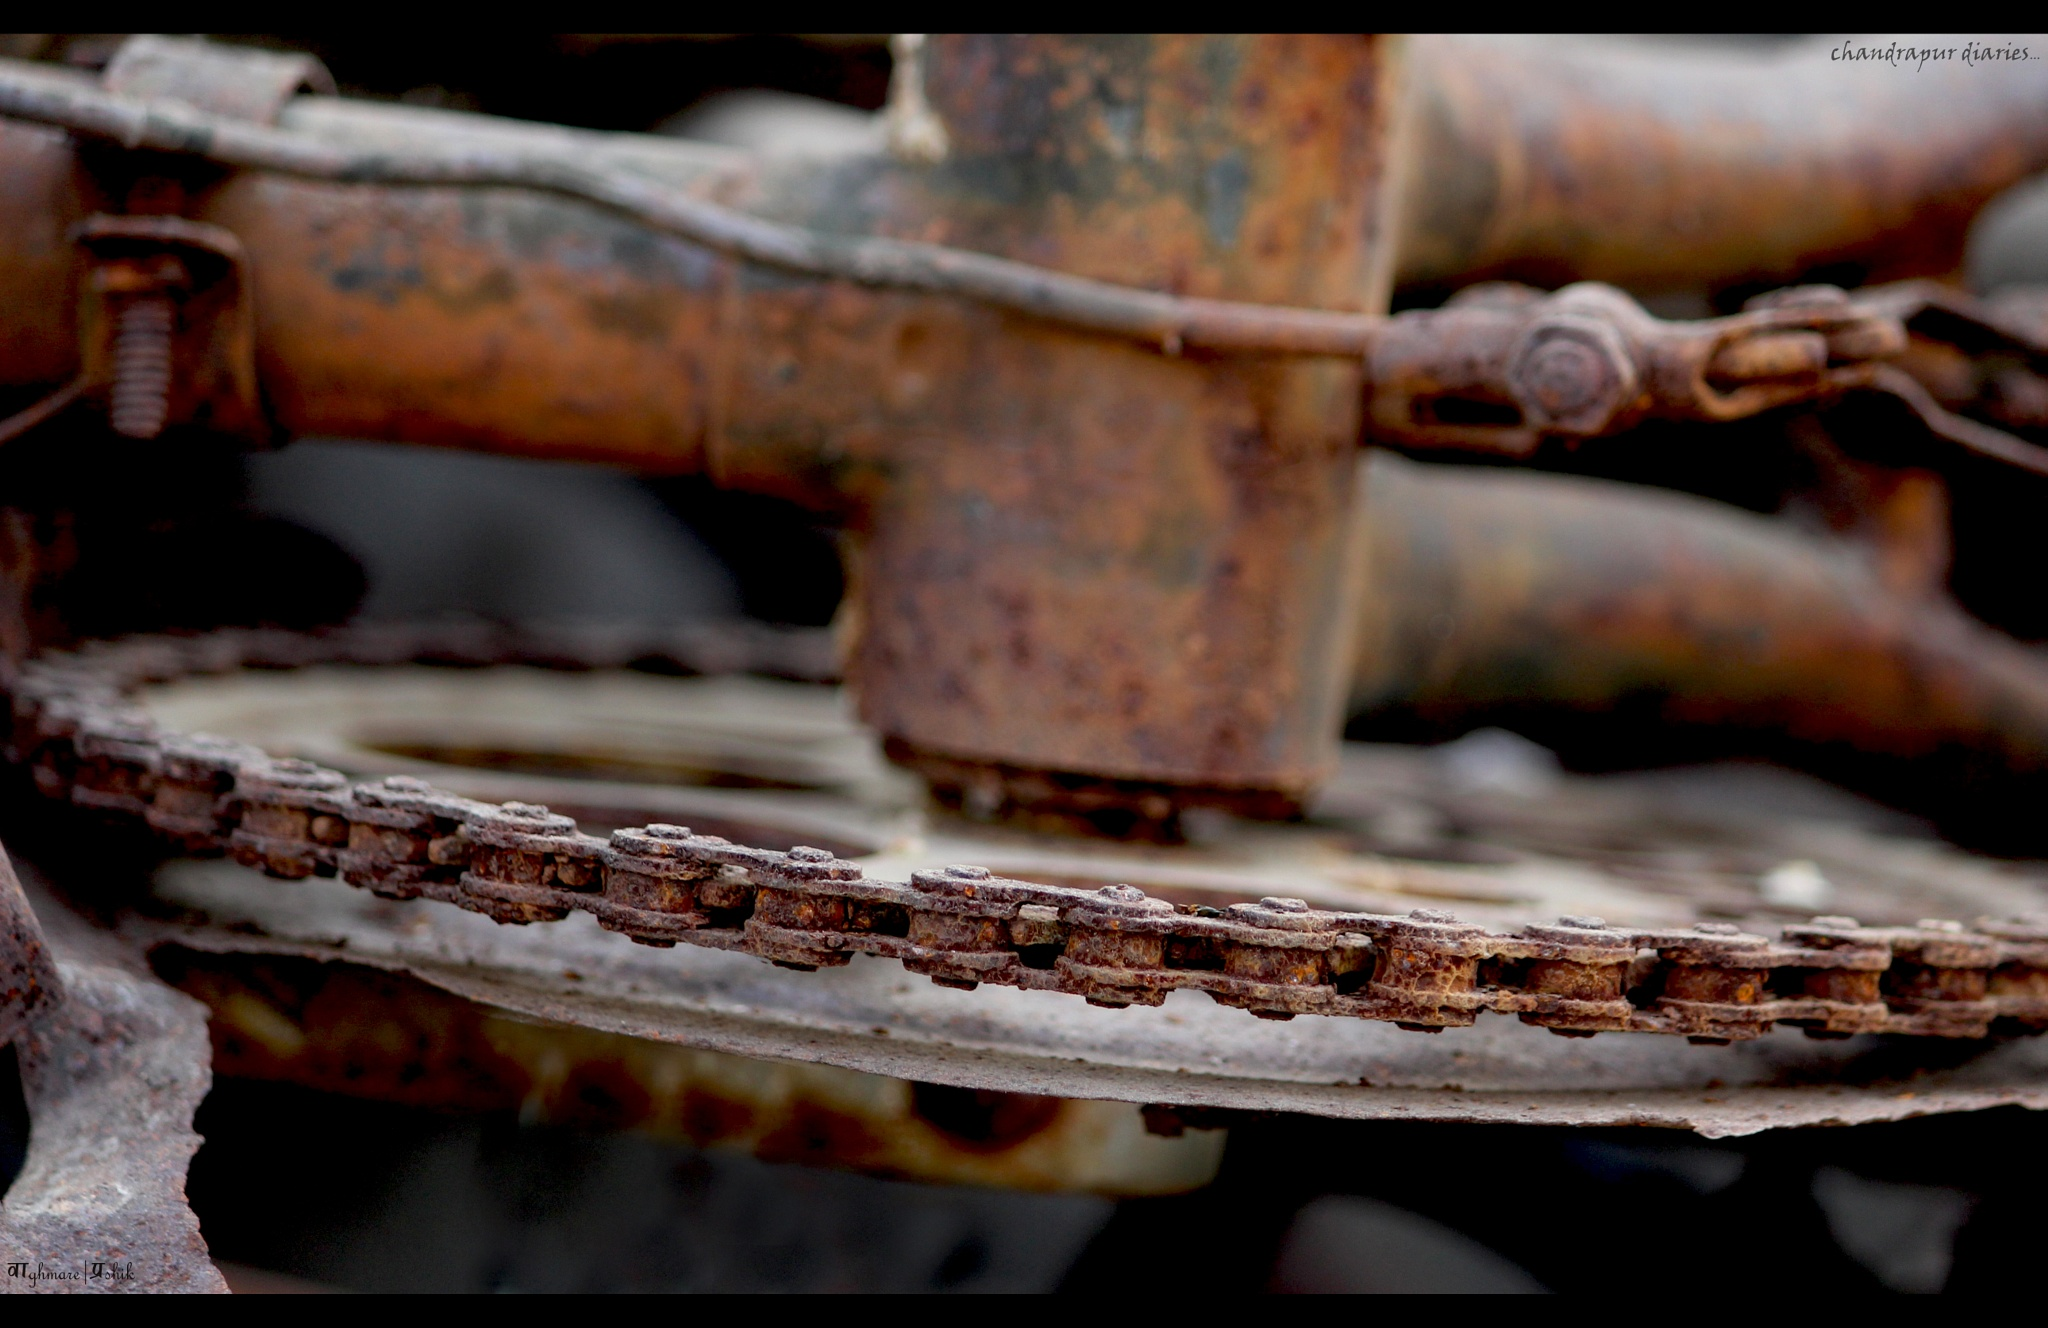 #rust#cycle#untold story by Prashik Waghmare